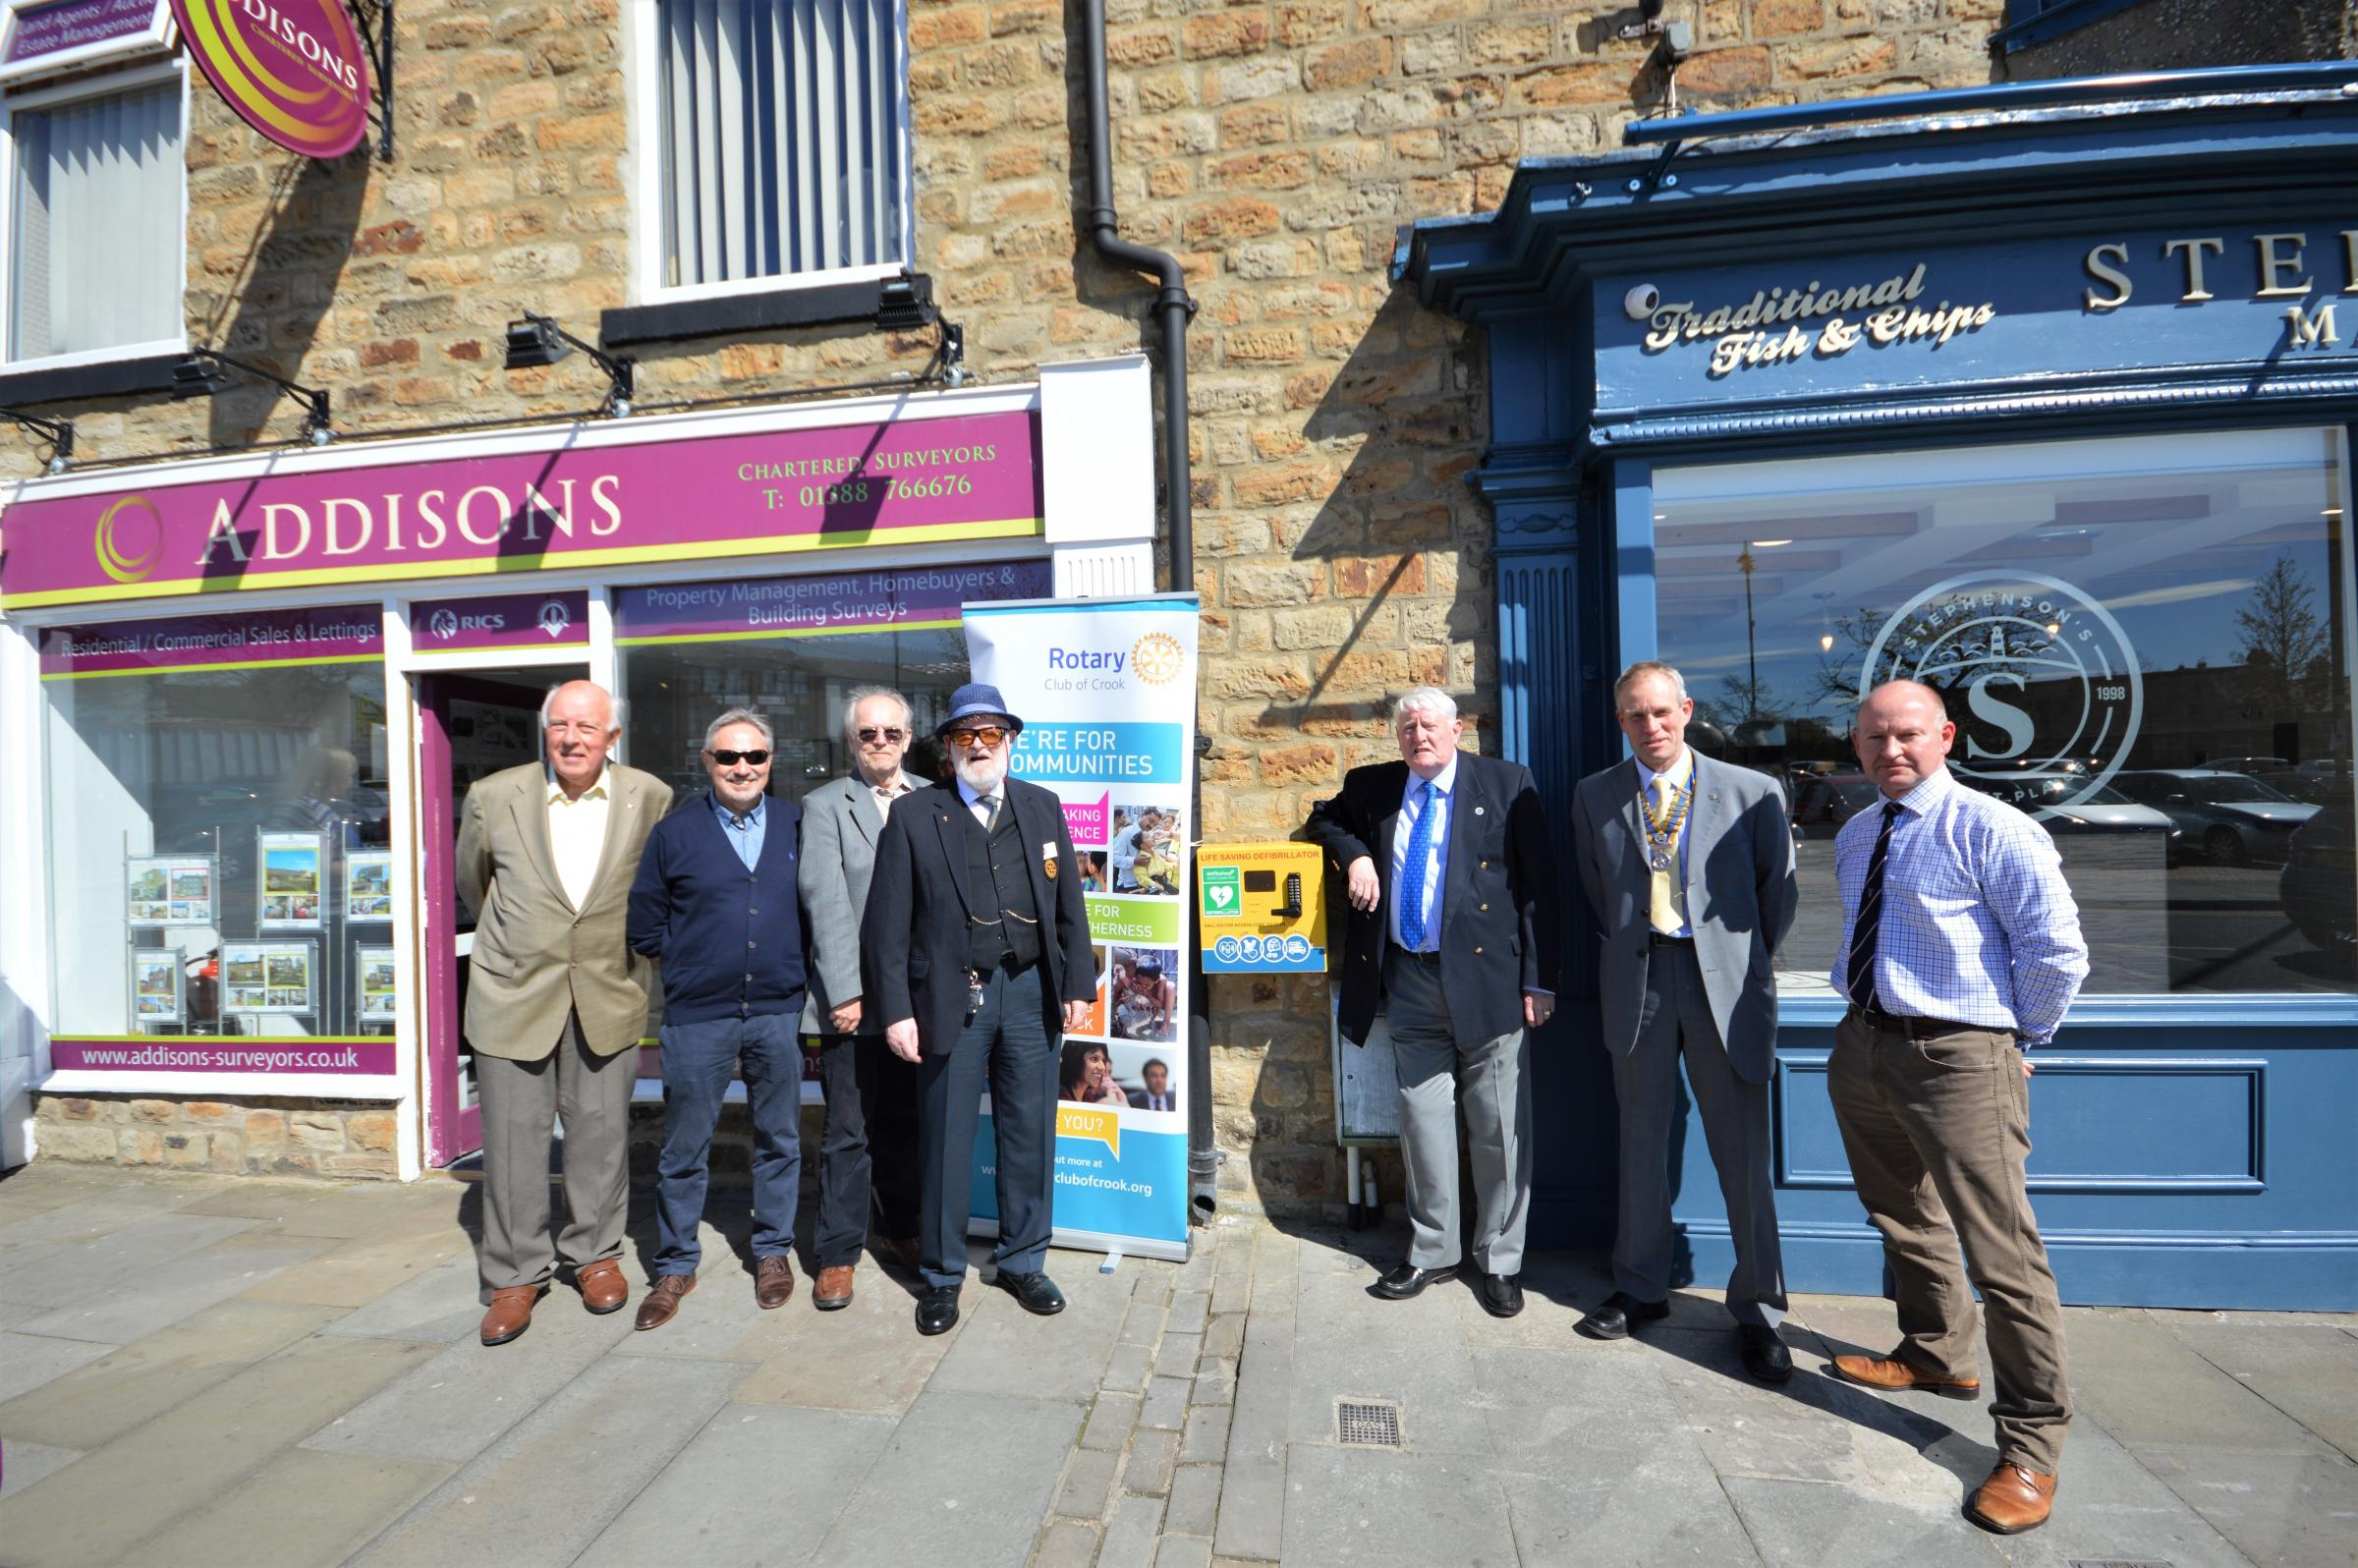 SUCCESS: Two defibrillators, including one outside Addisons Chartered Surveyors, have been installed in Crook, thanks to Crook Rotary Club and the Three Towns Area Action Partnership Picture: EDD FORSTER